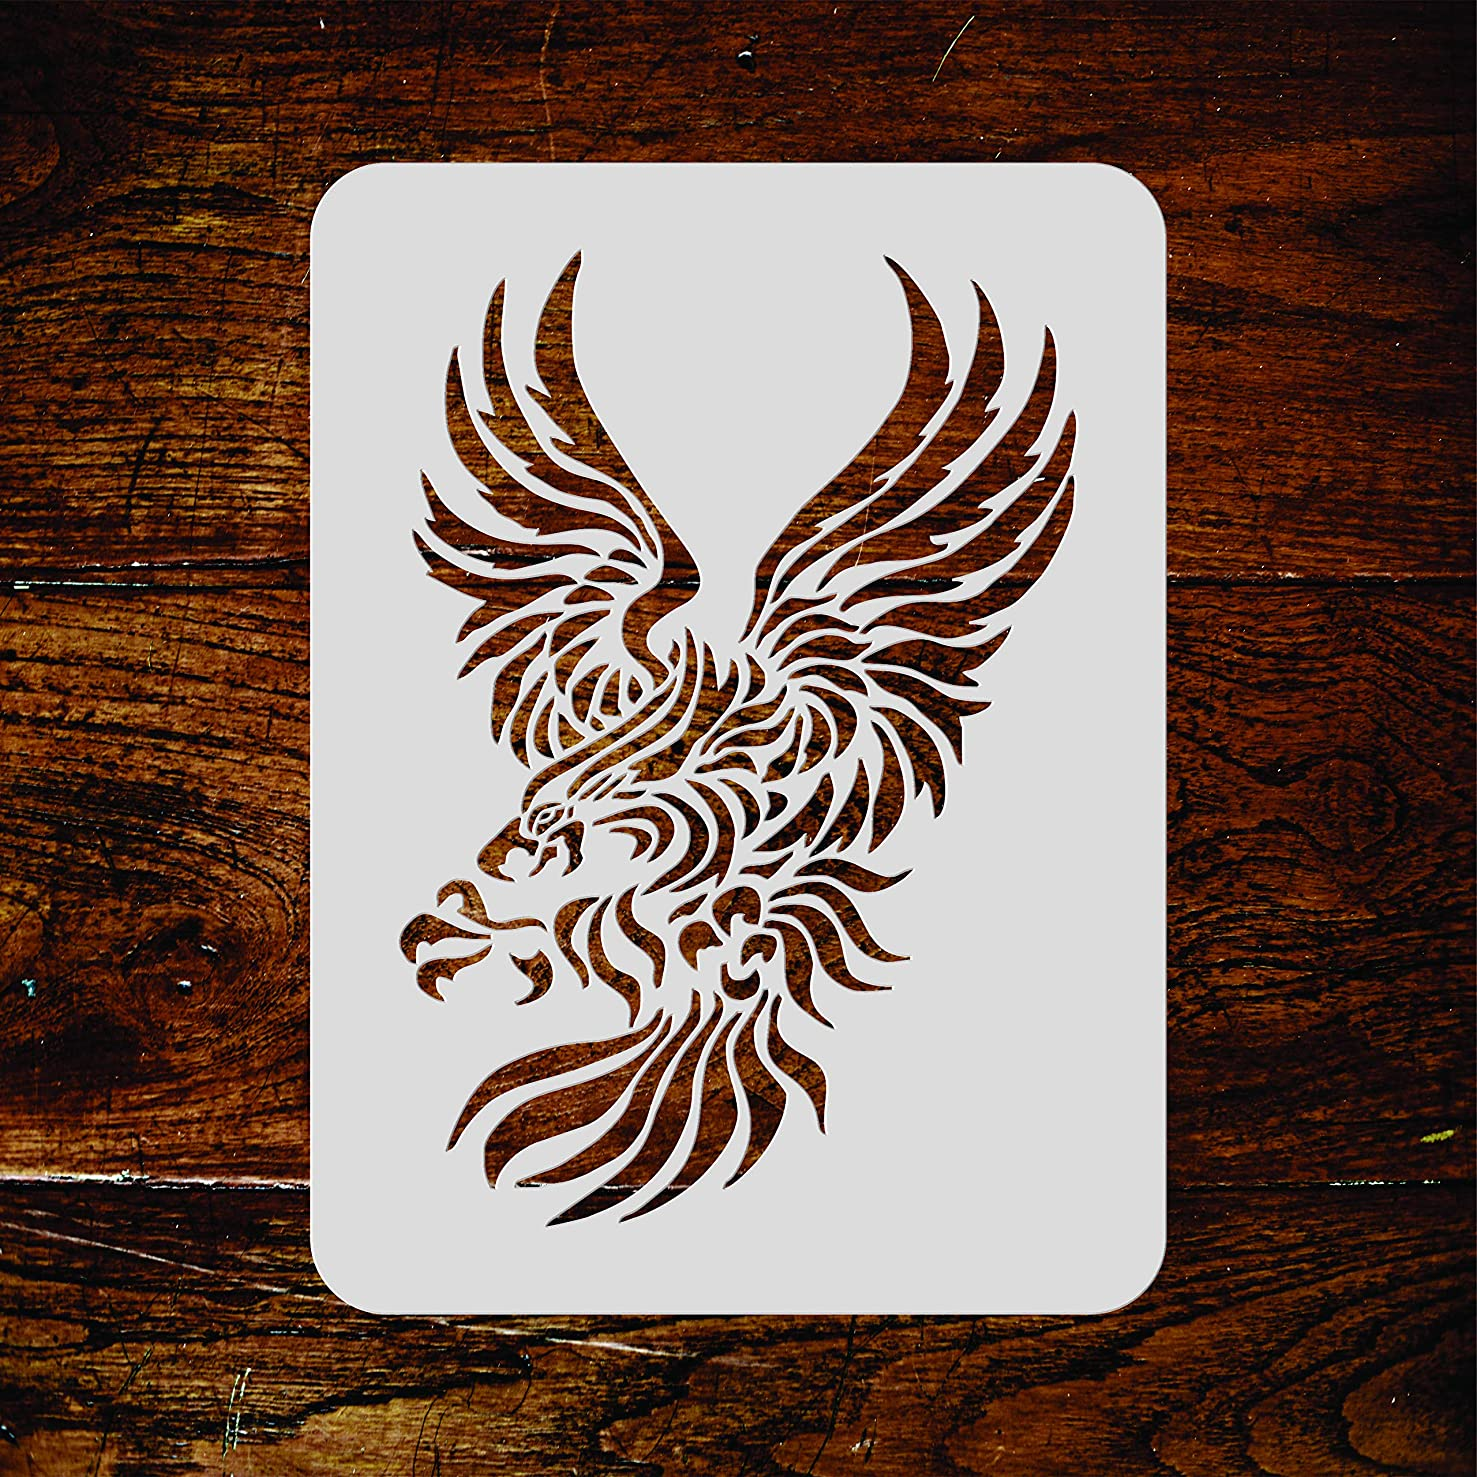 Eagle Stencil - 6.5 x 10 inch (M) - Reusable Stylized Bird Animal Wildlife Wall Stencil Template - Use on Paper Projects Scrapbook Journal Walls Floors Fabric Furniture Glass Wood etc.